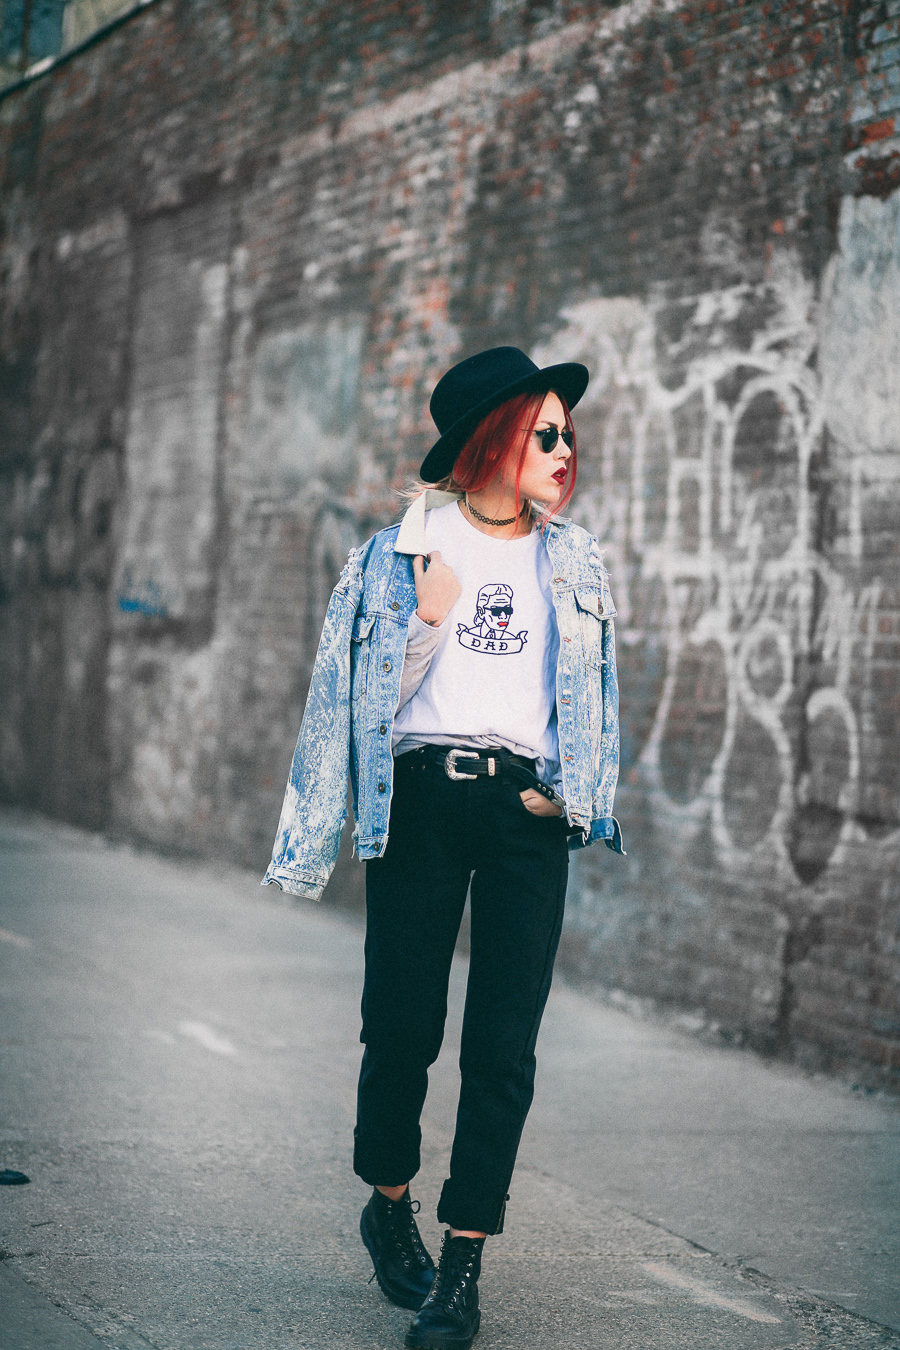 Le Happy wearing Vintage Twin denim vintage jacket and Dr Martens boots